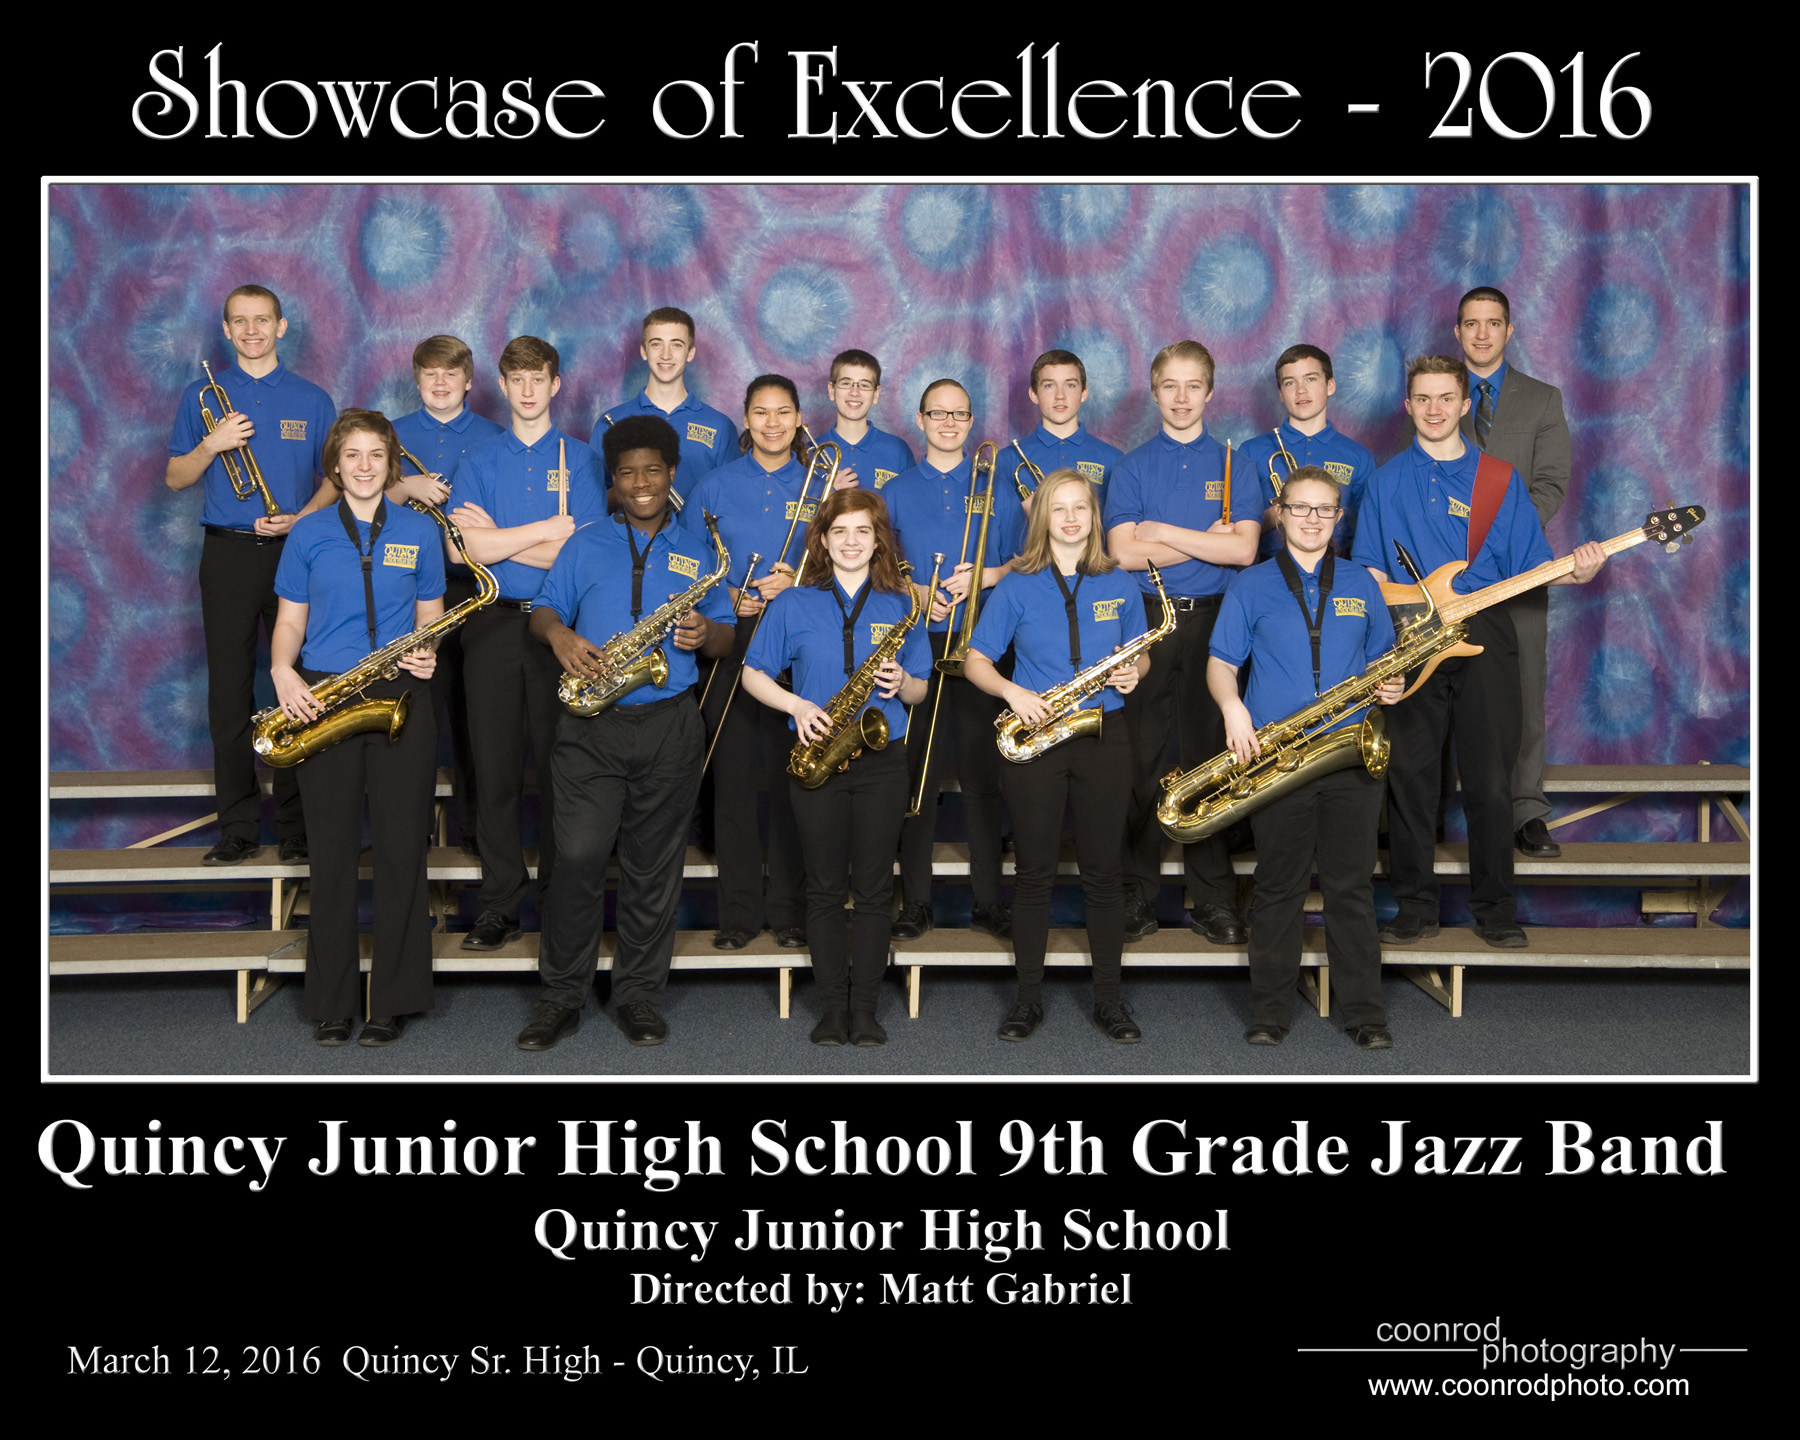 http://orders.coonrodphoto.com/20152016-QHS/Showcase-of-Excellence-2016/